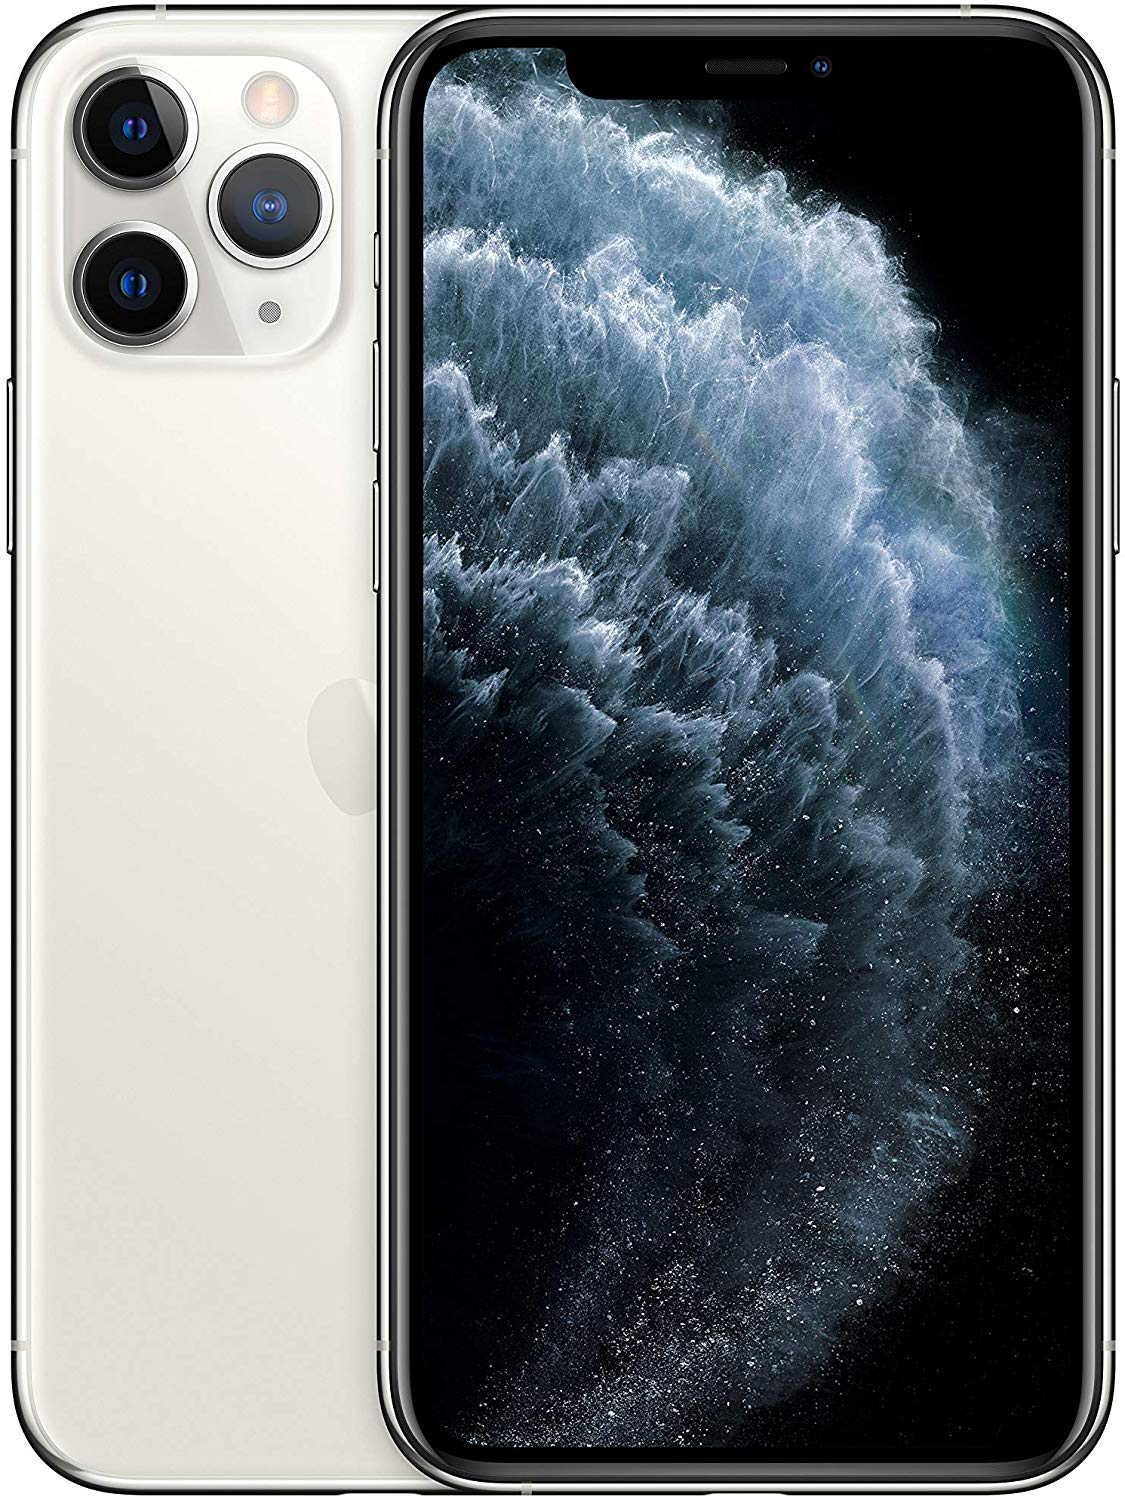 Phone Apple IPhone 11 Pro, Silver Color (Silver), 4 GB RAM, 64 GB ROM, OLED Display Super Retina XDR 5,8